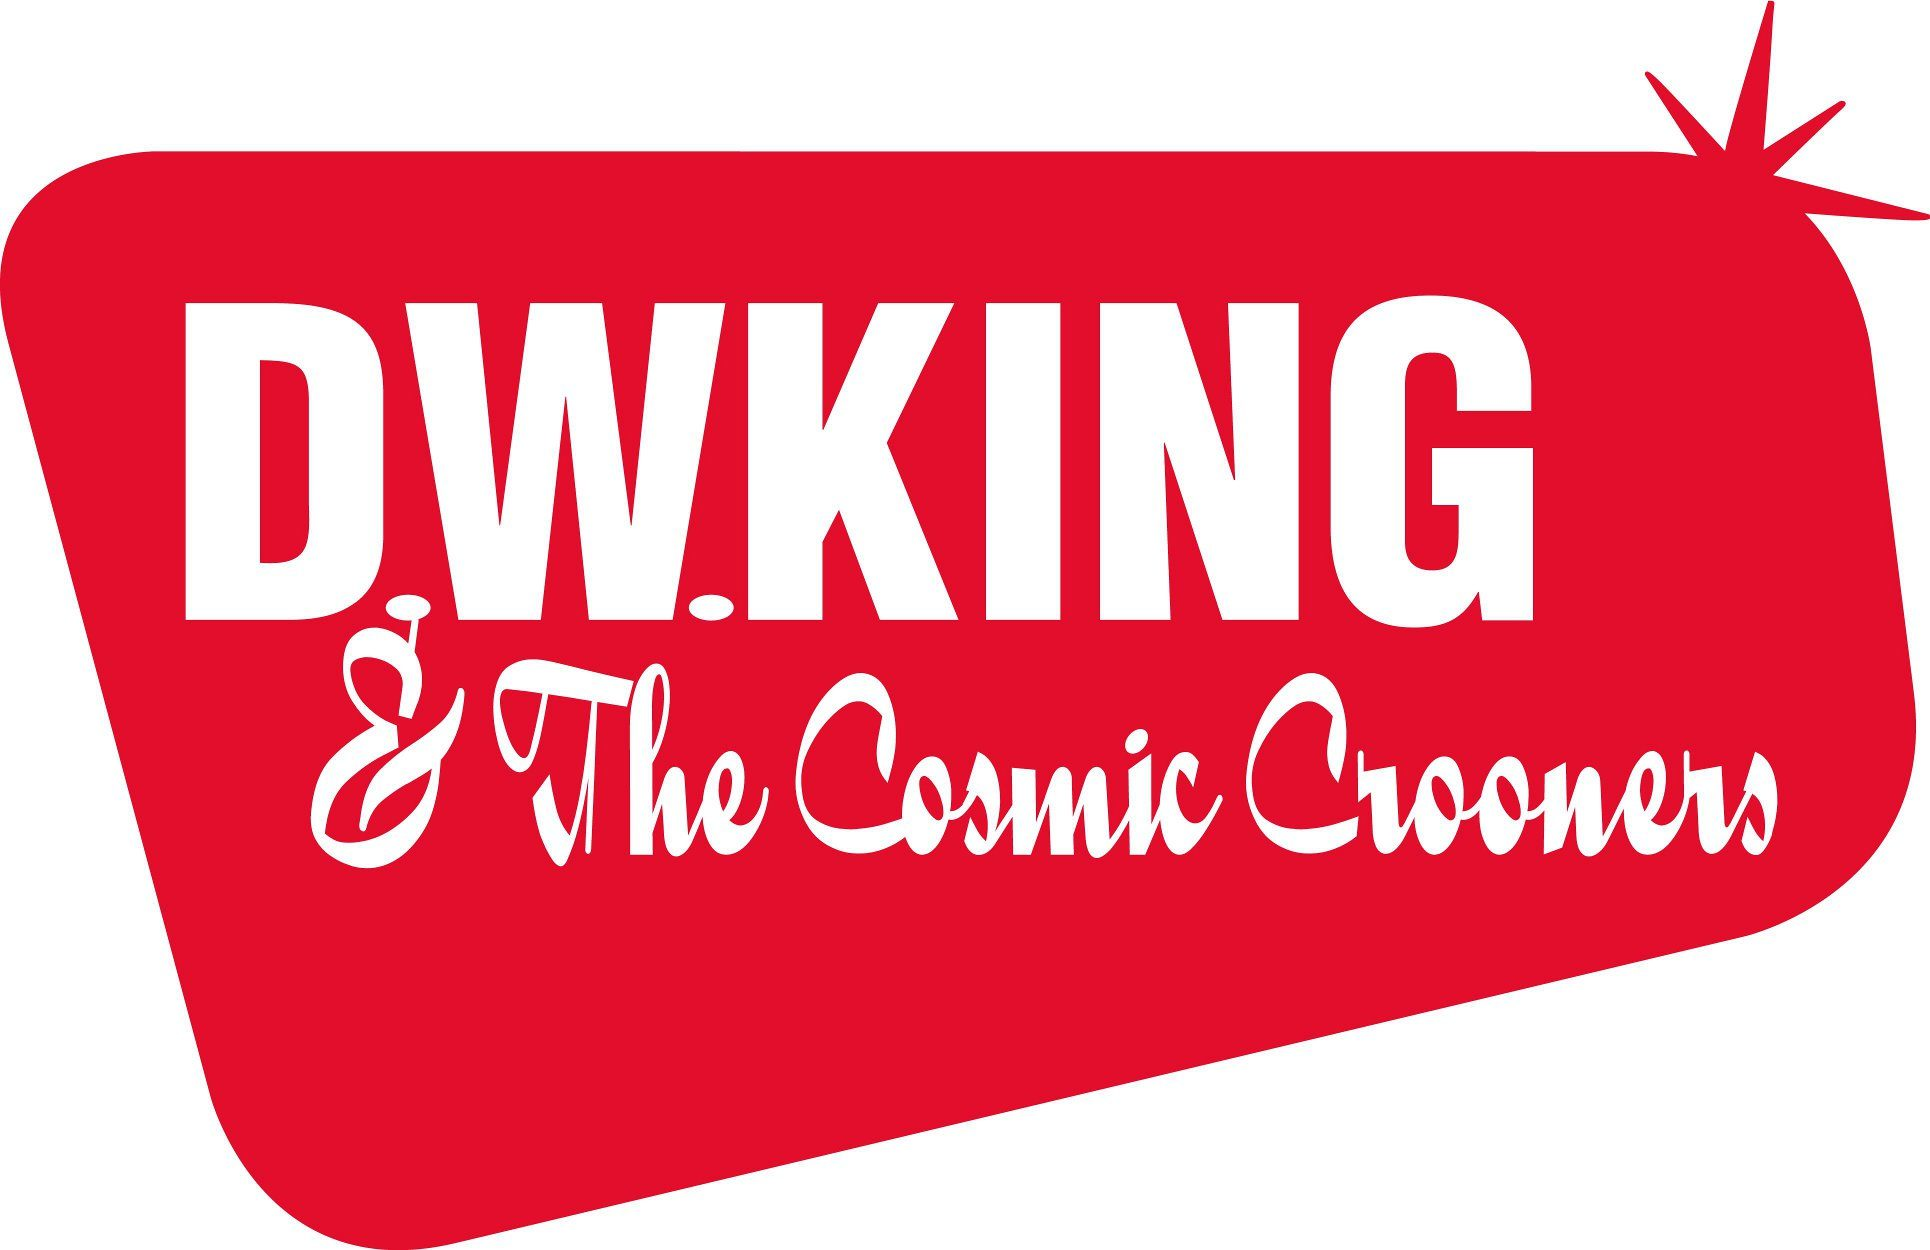 D.W. King & The Cosmic Crooners